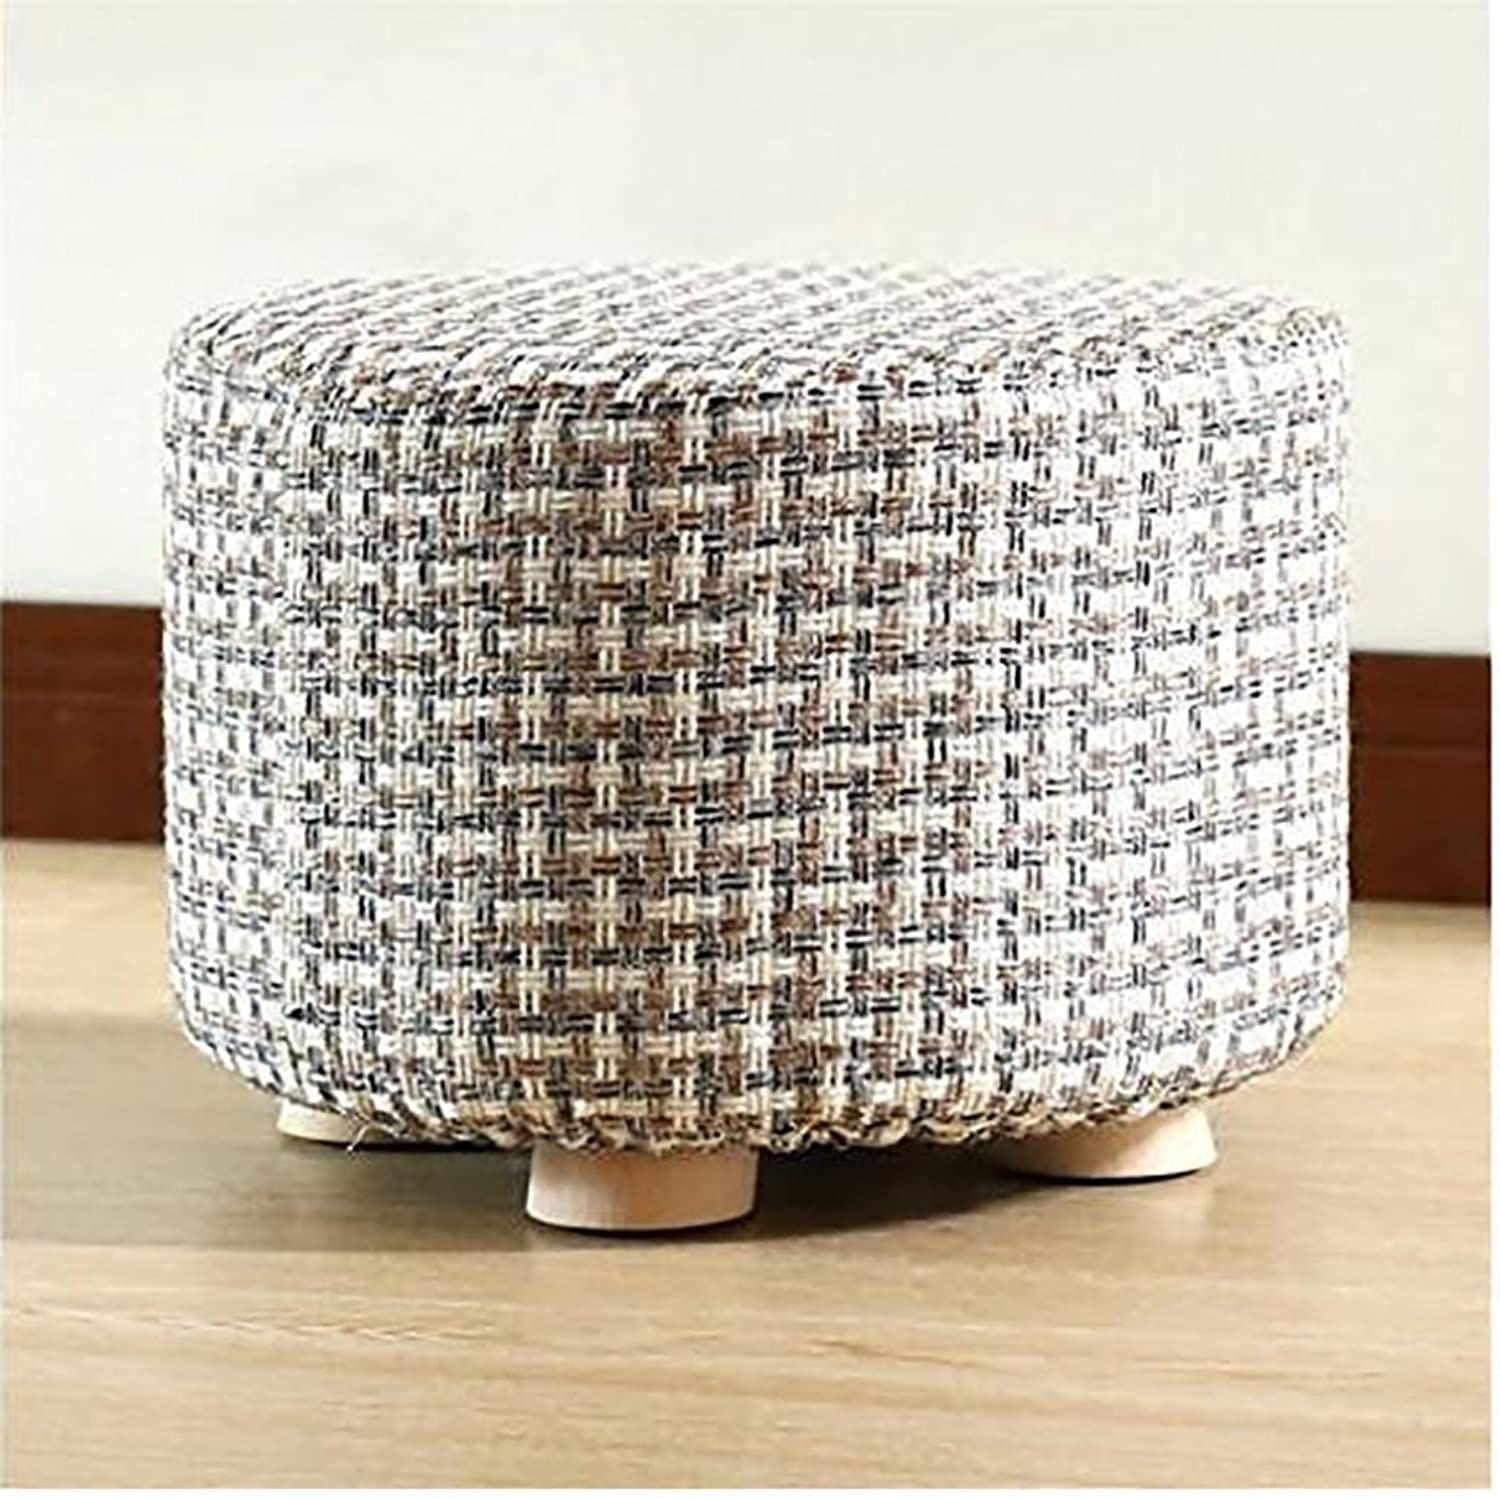 AIDELAI Bar Stool Chair- Solid Wood Change shoes Stool Footstool Test shoes Stool Round Upholstered Footstools 4 Wood Leg Pouffes Stool Fabric Cover Saddle Seat (color     4)